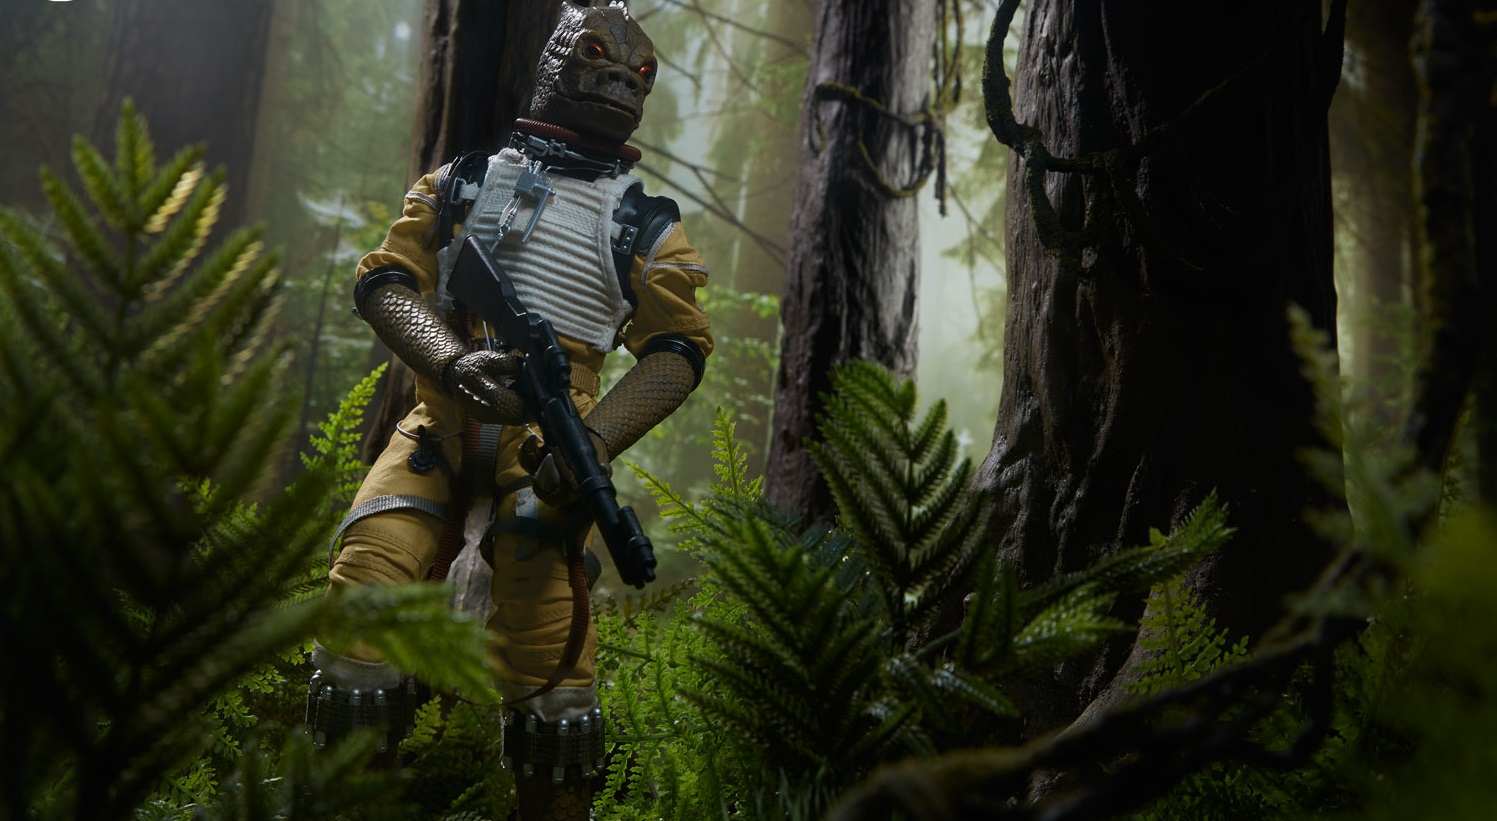 Sideshow Bossk 2016 T